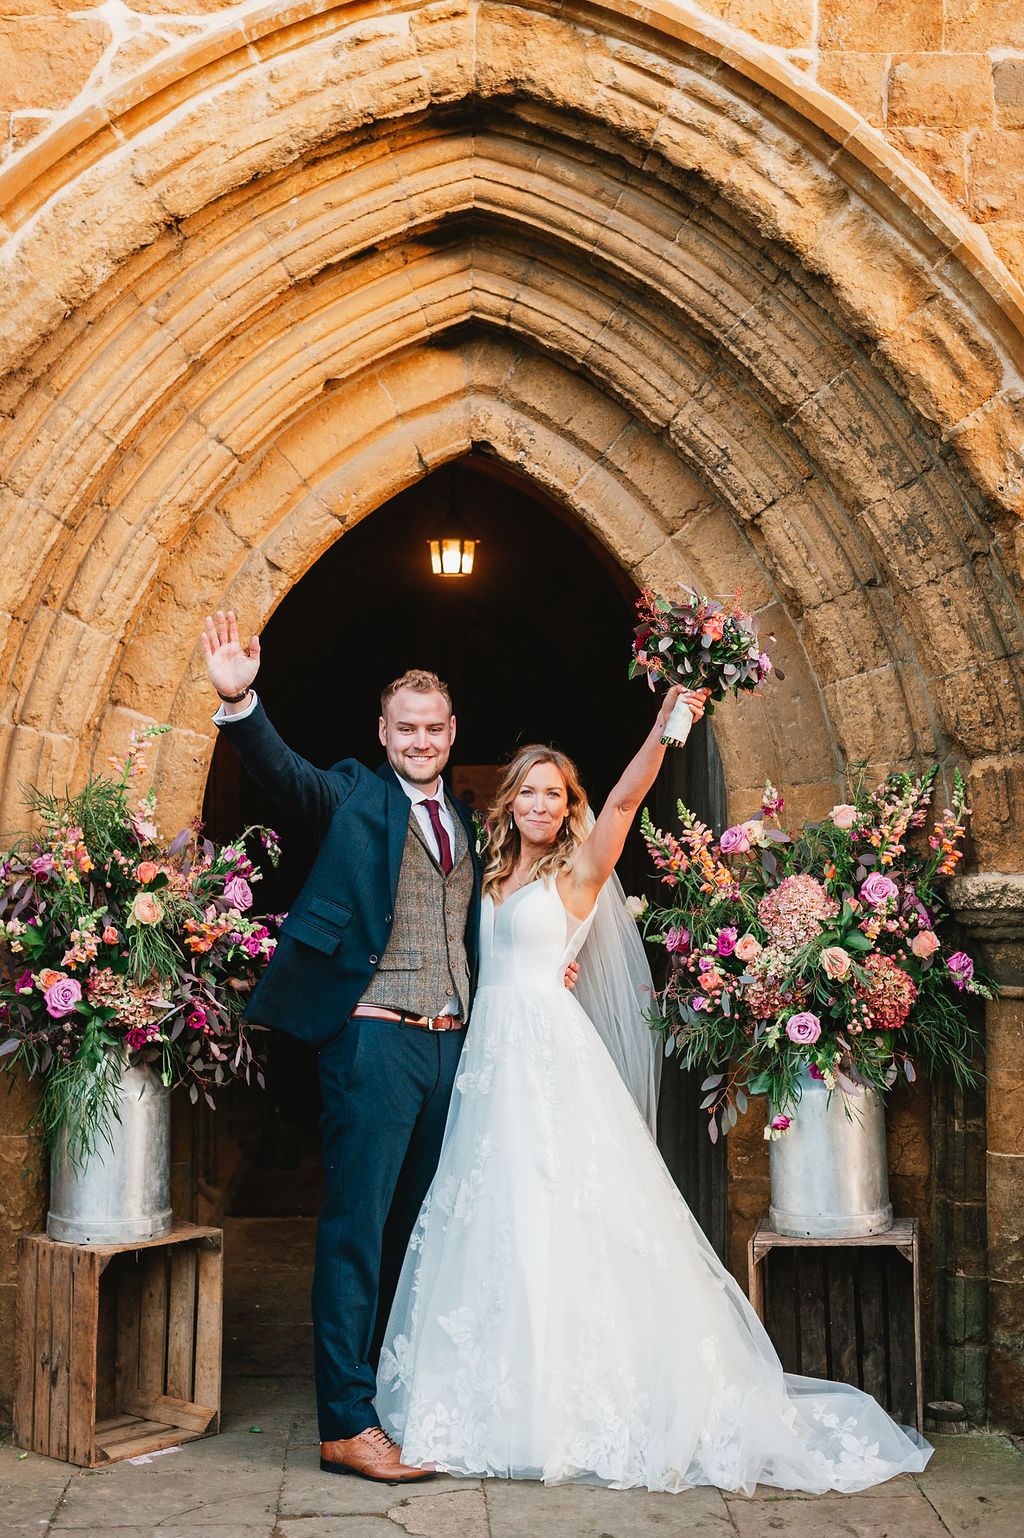 Pink winter wedding flowers in an intimate and socially distanced wedding